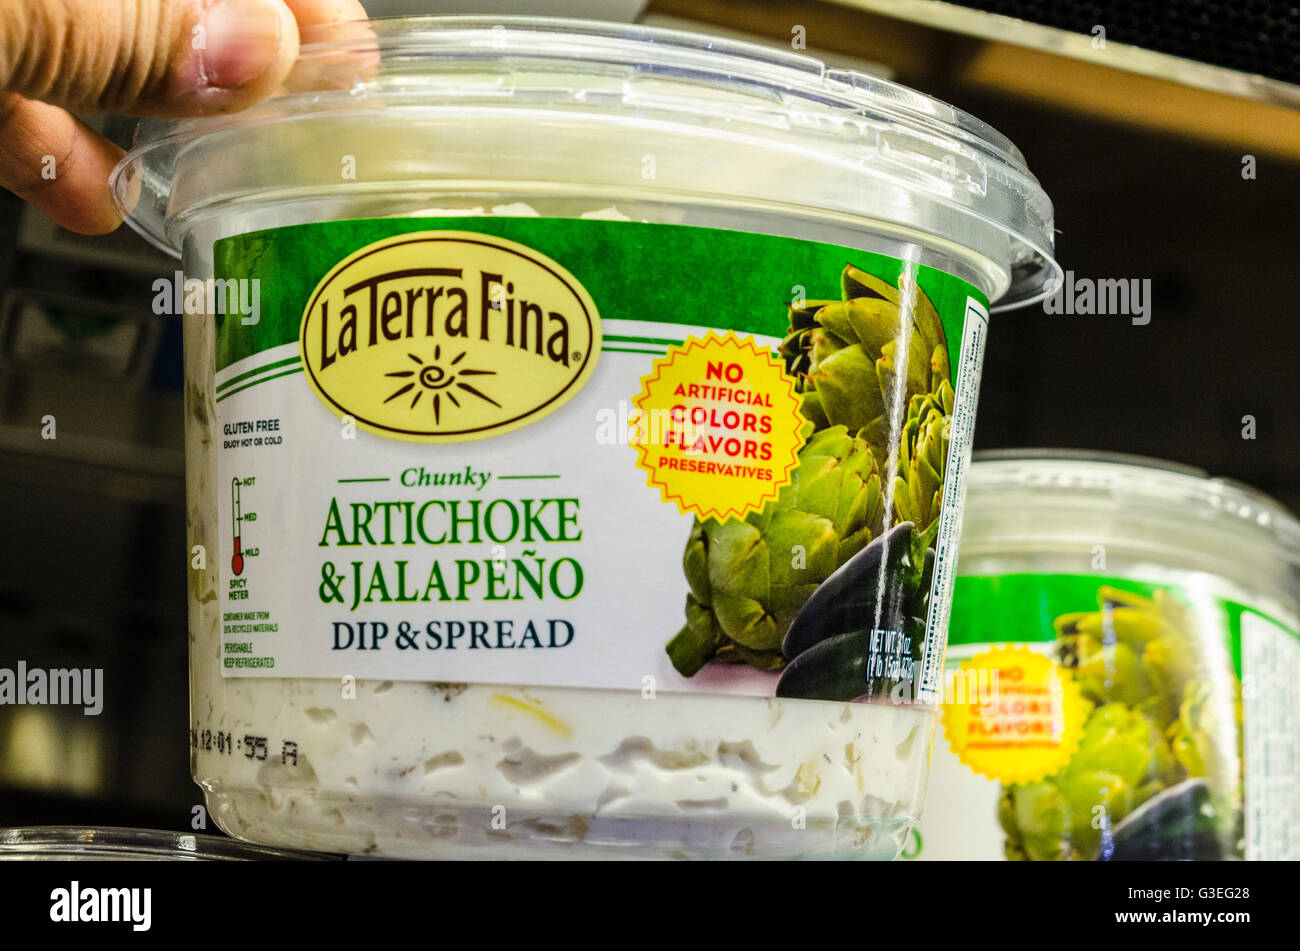 Artichoke and Jalapeno dip and spread at a Costco Store in